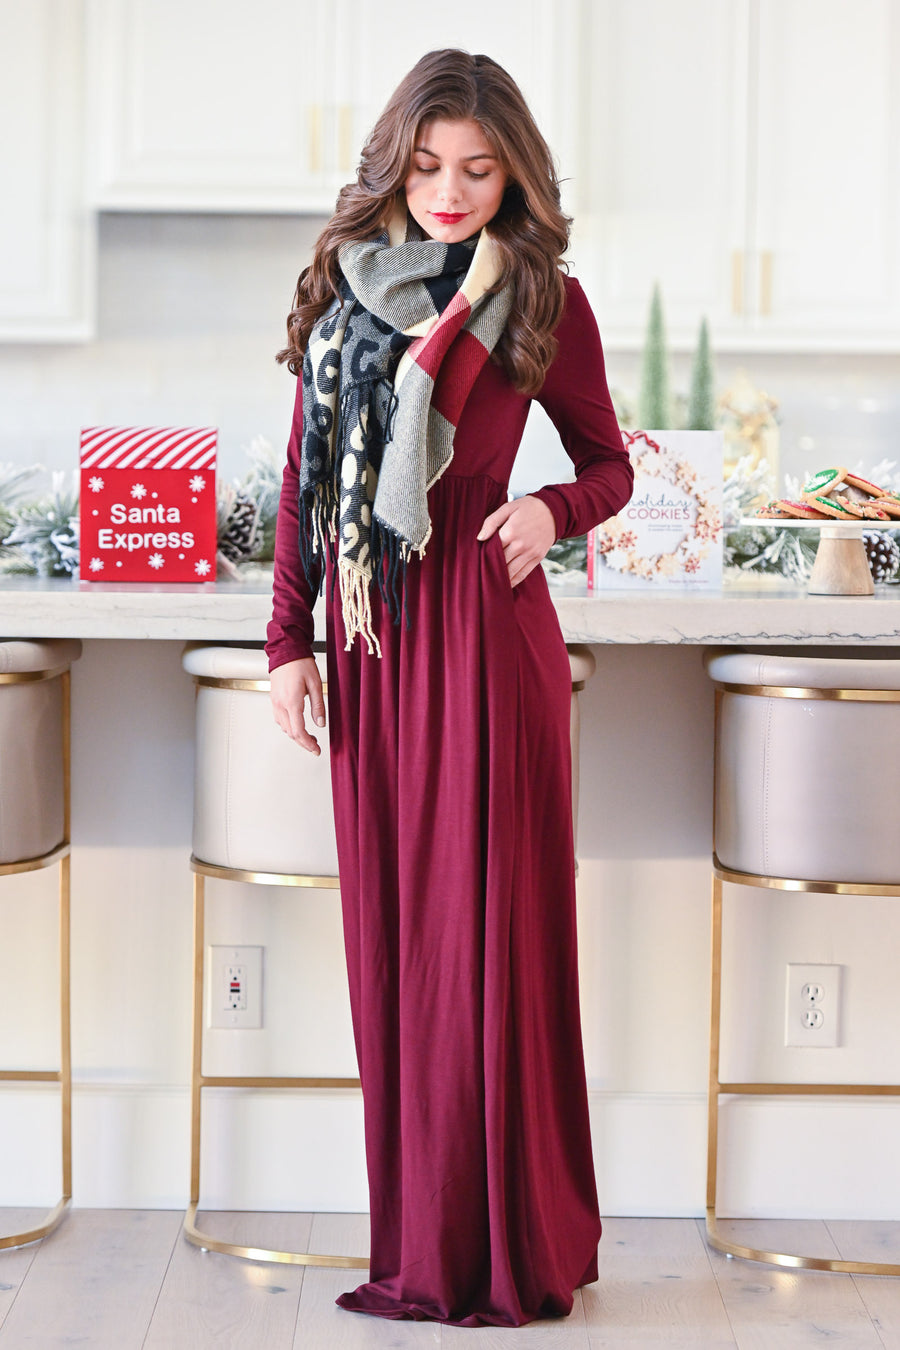 Holiday Treat Long Sleeve Maxi Dress - Wine women's holiday dress, Closet Candy Boutique 1